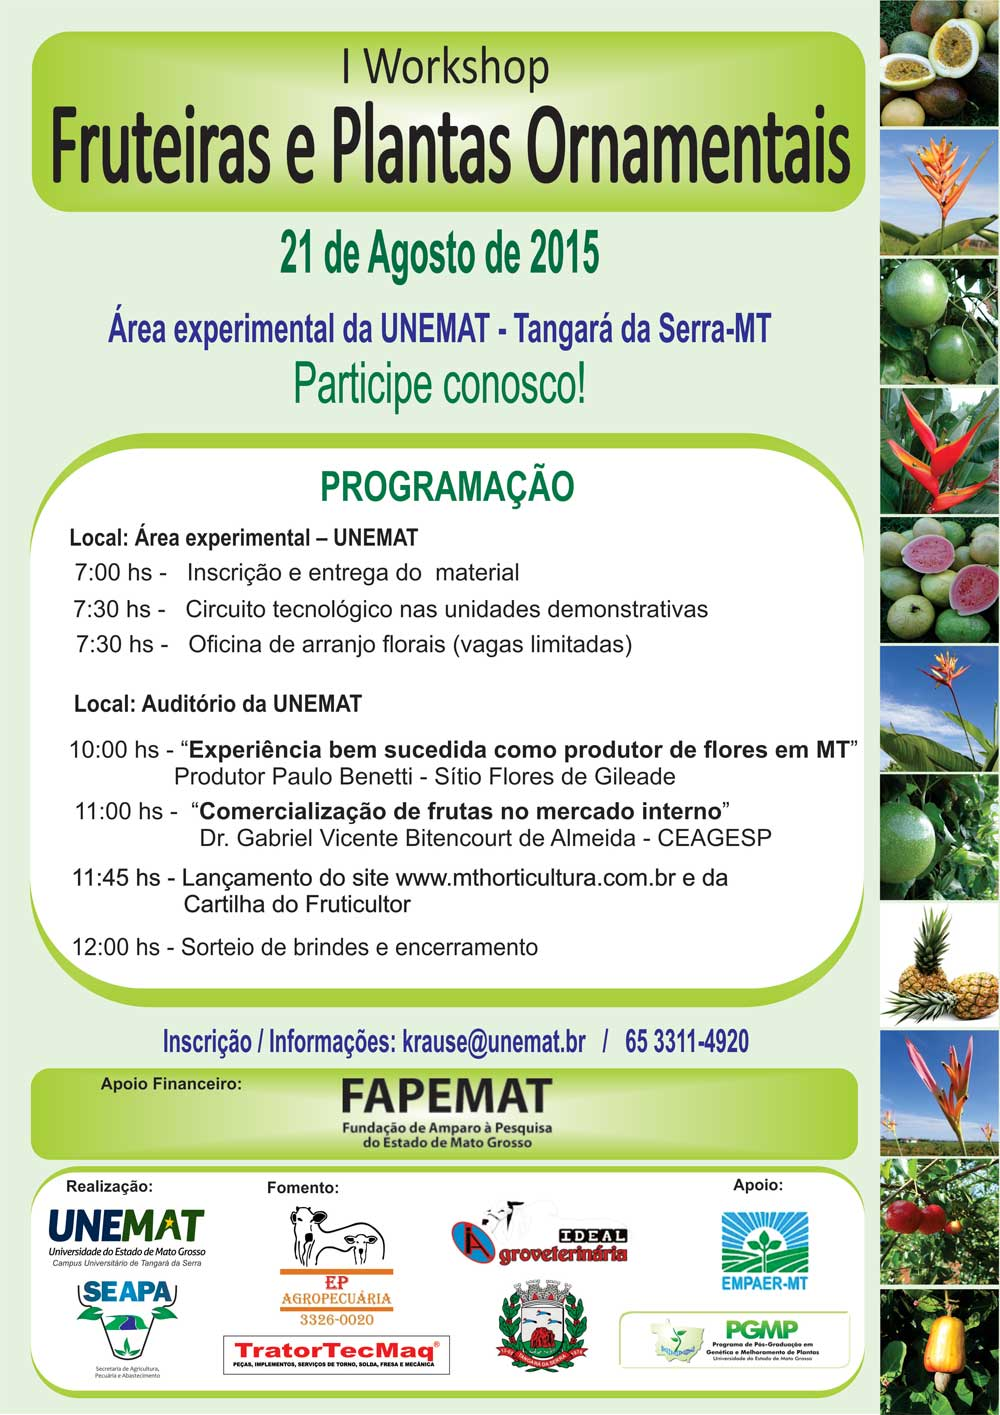 I Workshop de fruteiras e plantas ornamentais nativas do estado de Mato Grosso